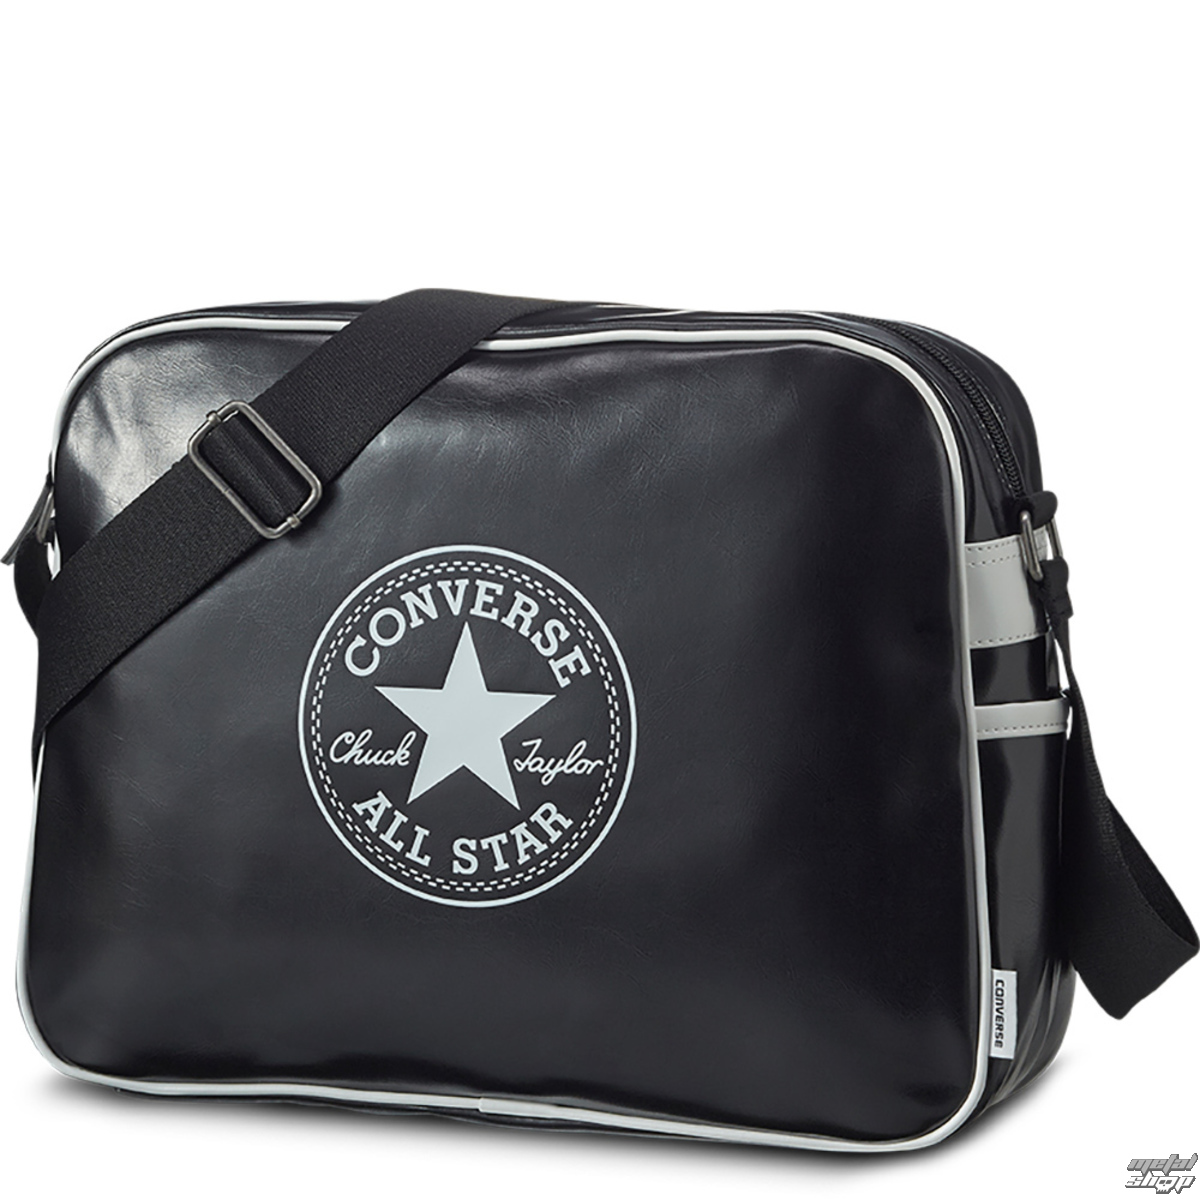 Small shoulder bag CONVERSE - 10002656-001 - metal-shop.eu 08ab0f9e1d